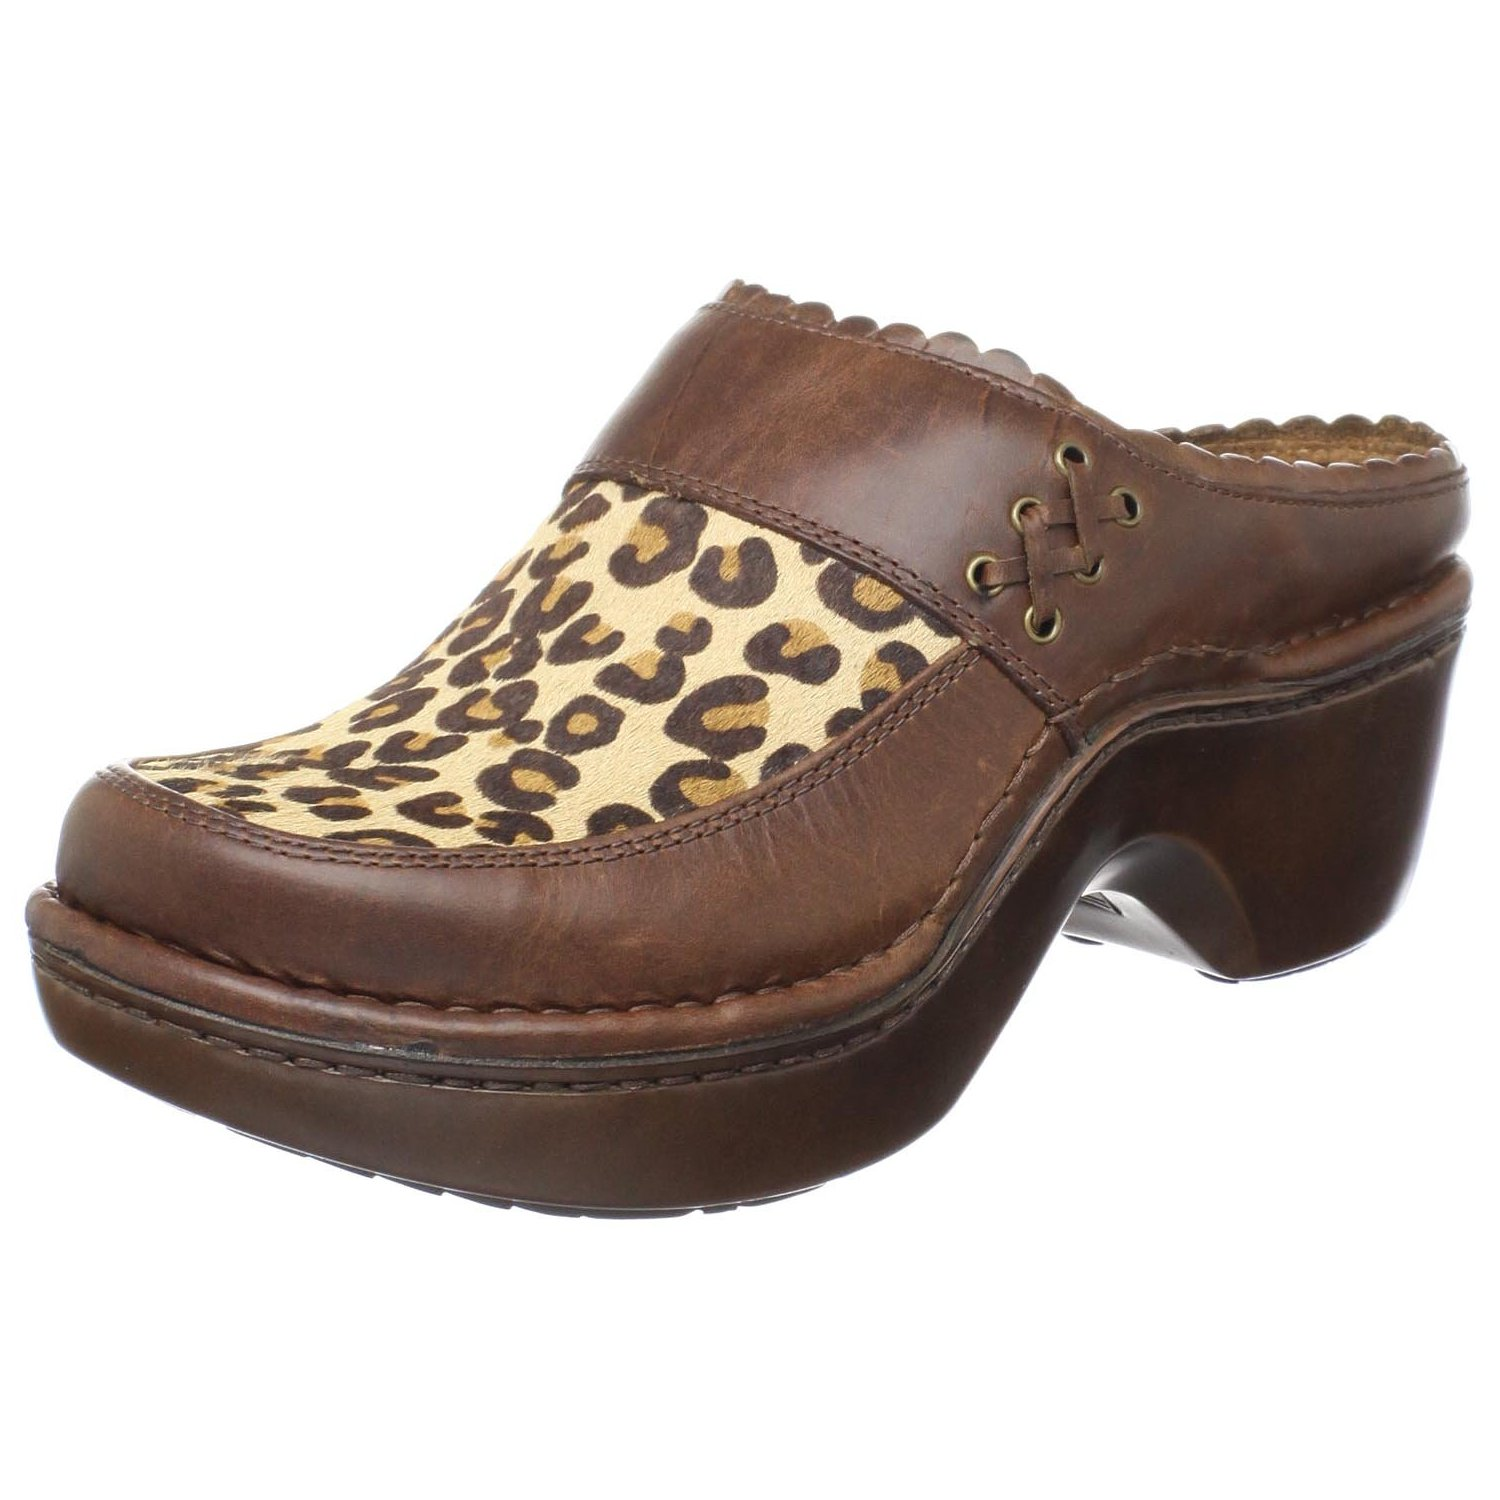 Ariat Leopard Hair On Hide Women's Mule Shoes